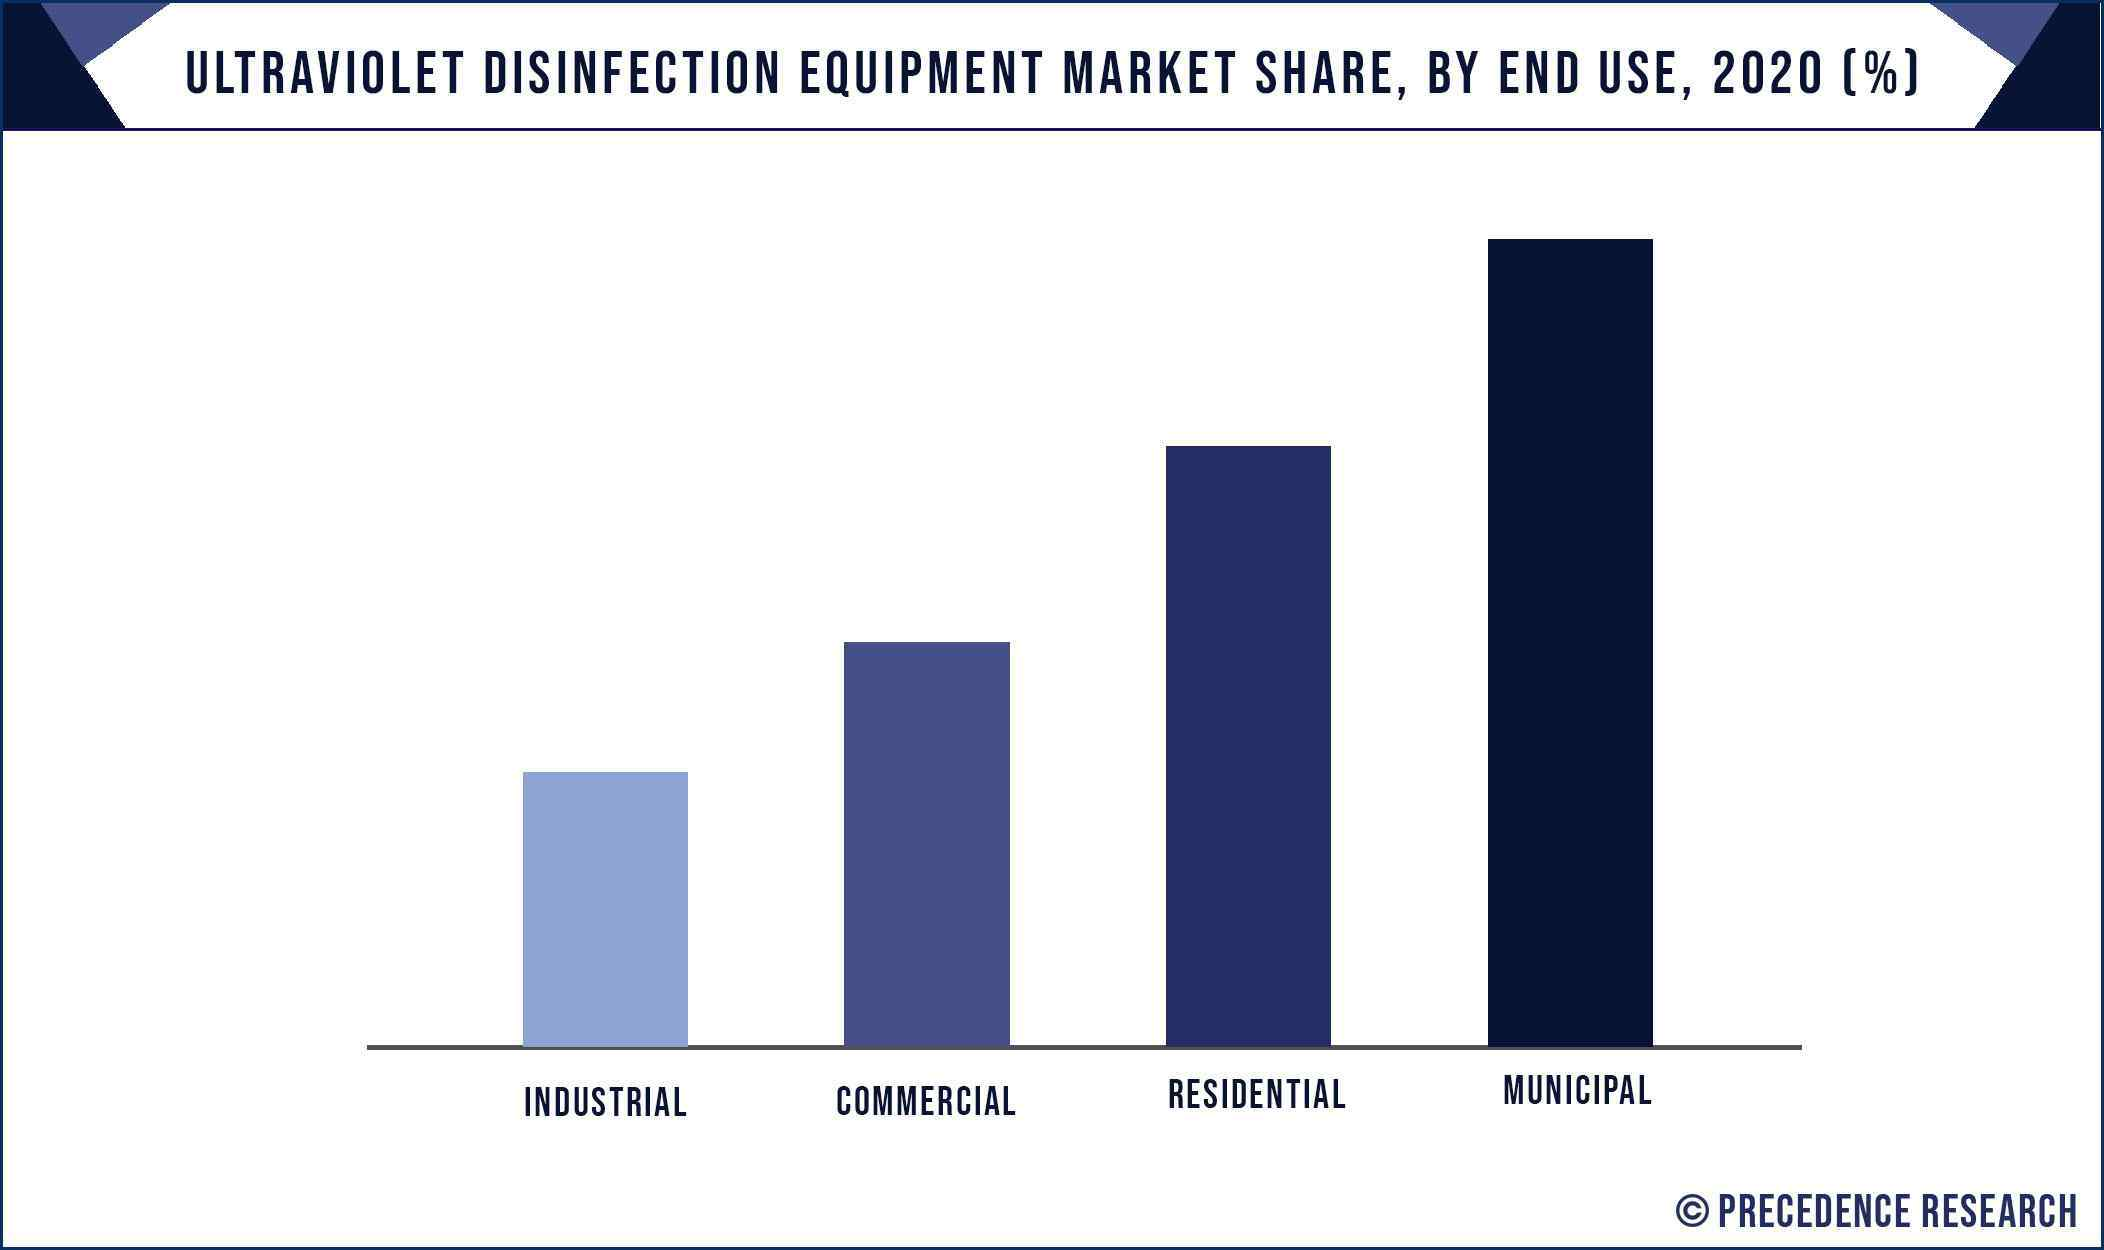 Ultraviolet Disinfection Equipment Market Share, By End Use, 2020 (%)